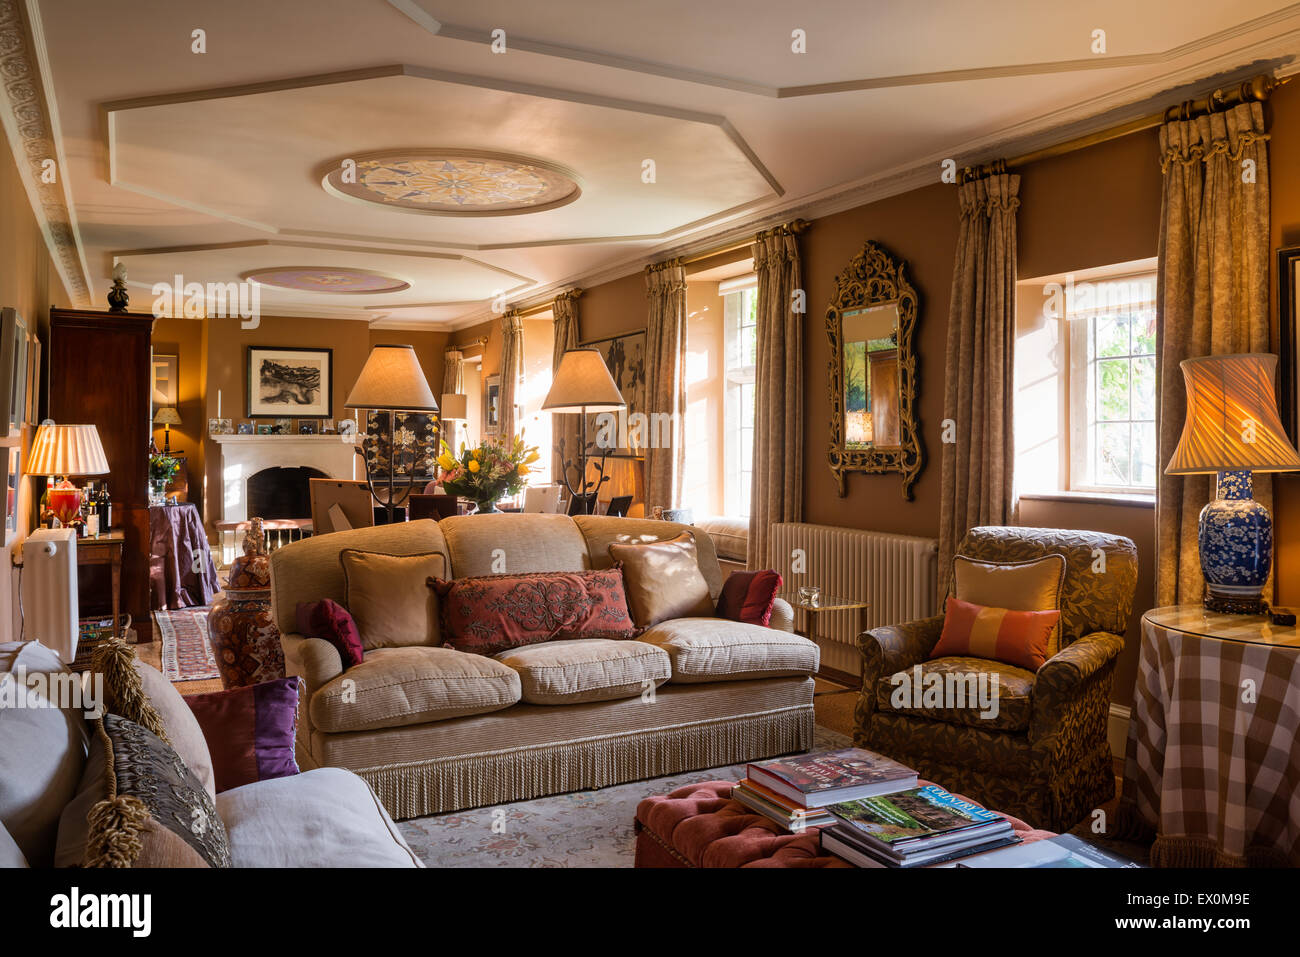 Long drawing room with sofas, fireplace and ceiling paintings - Stock Image